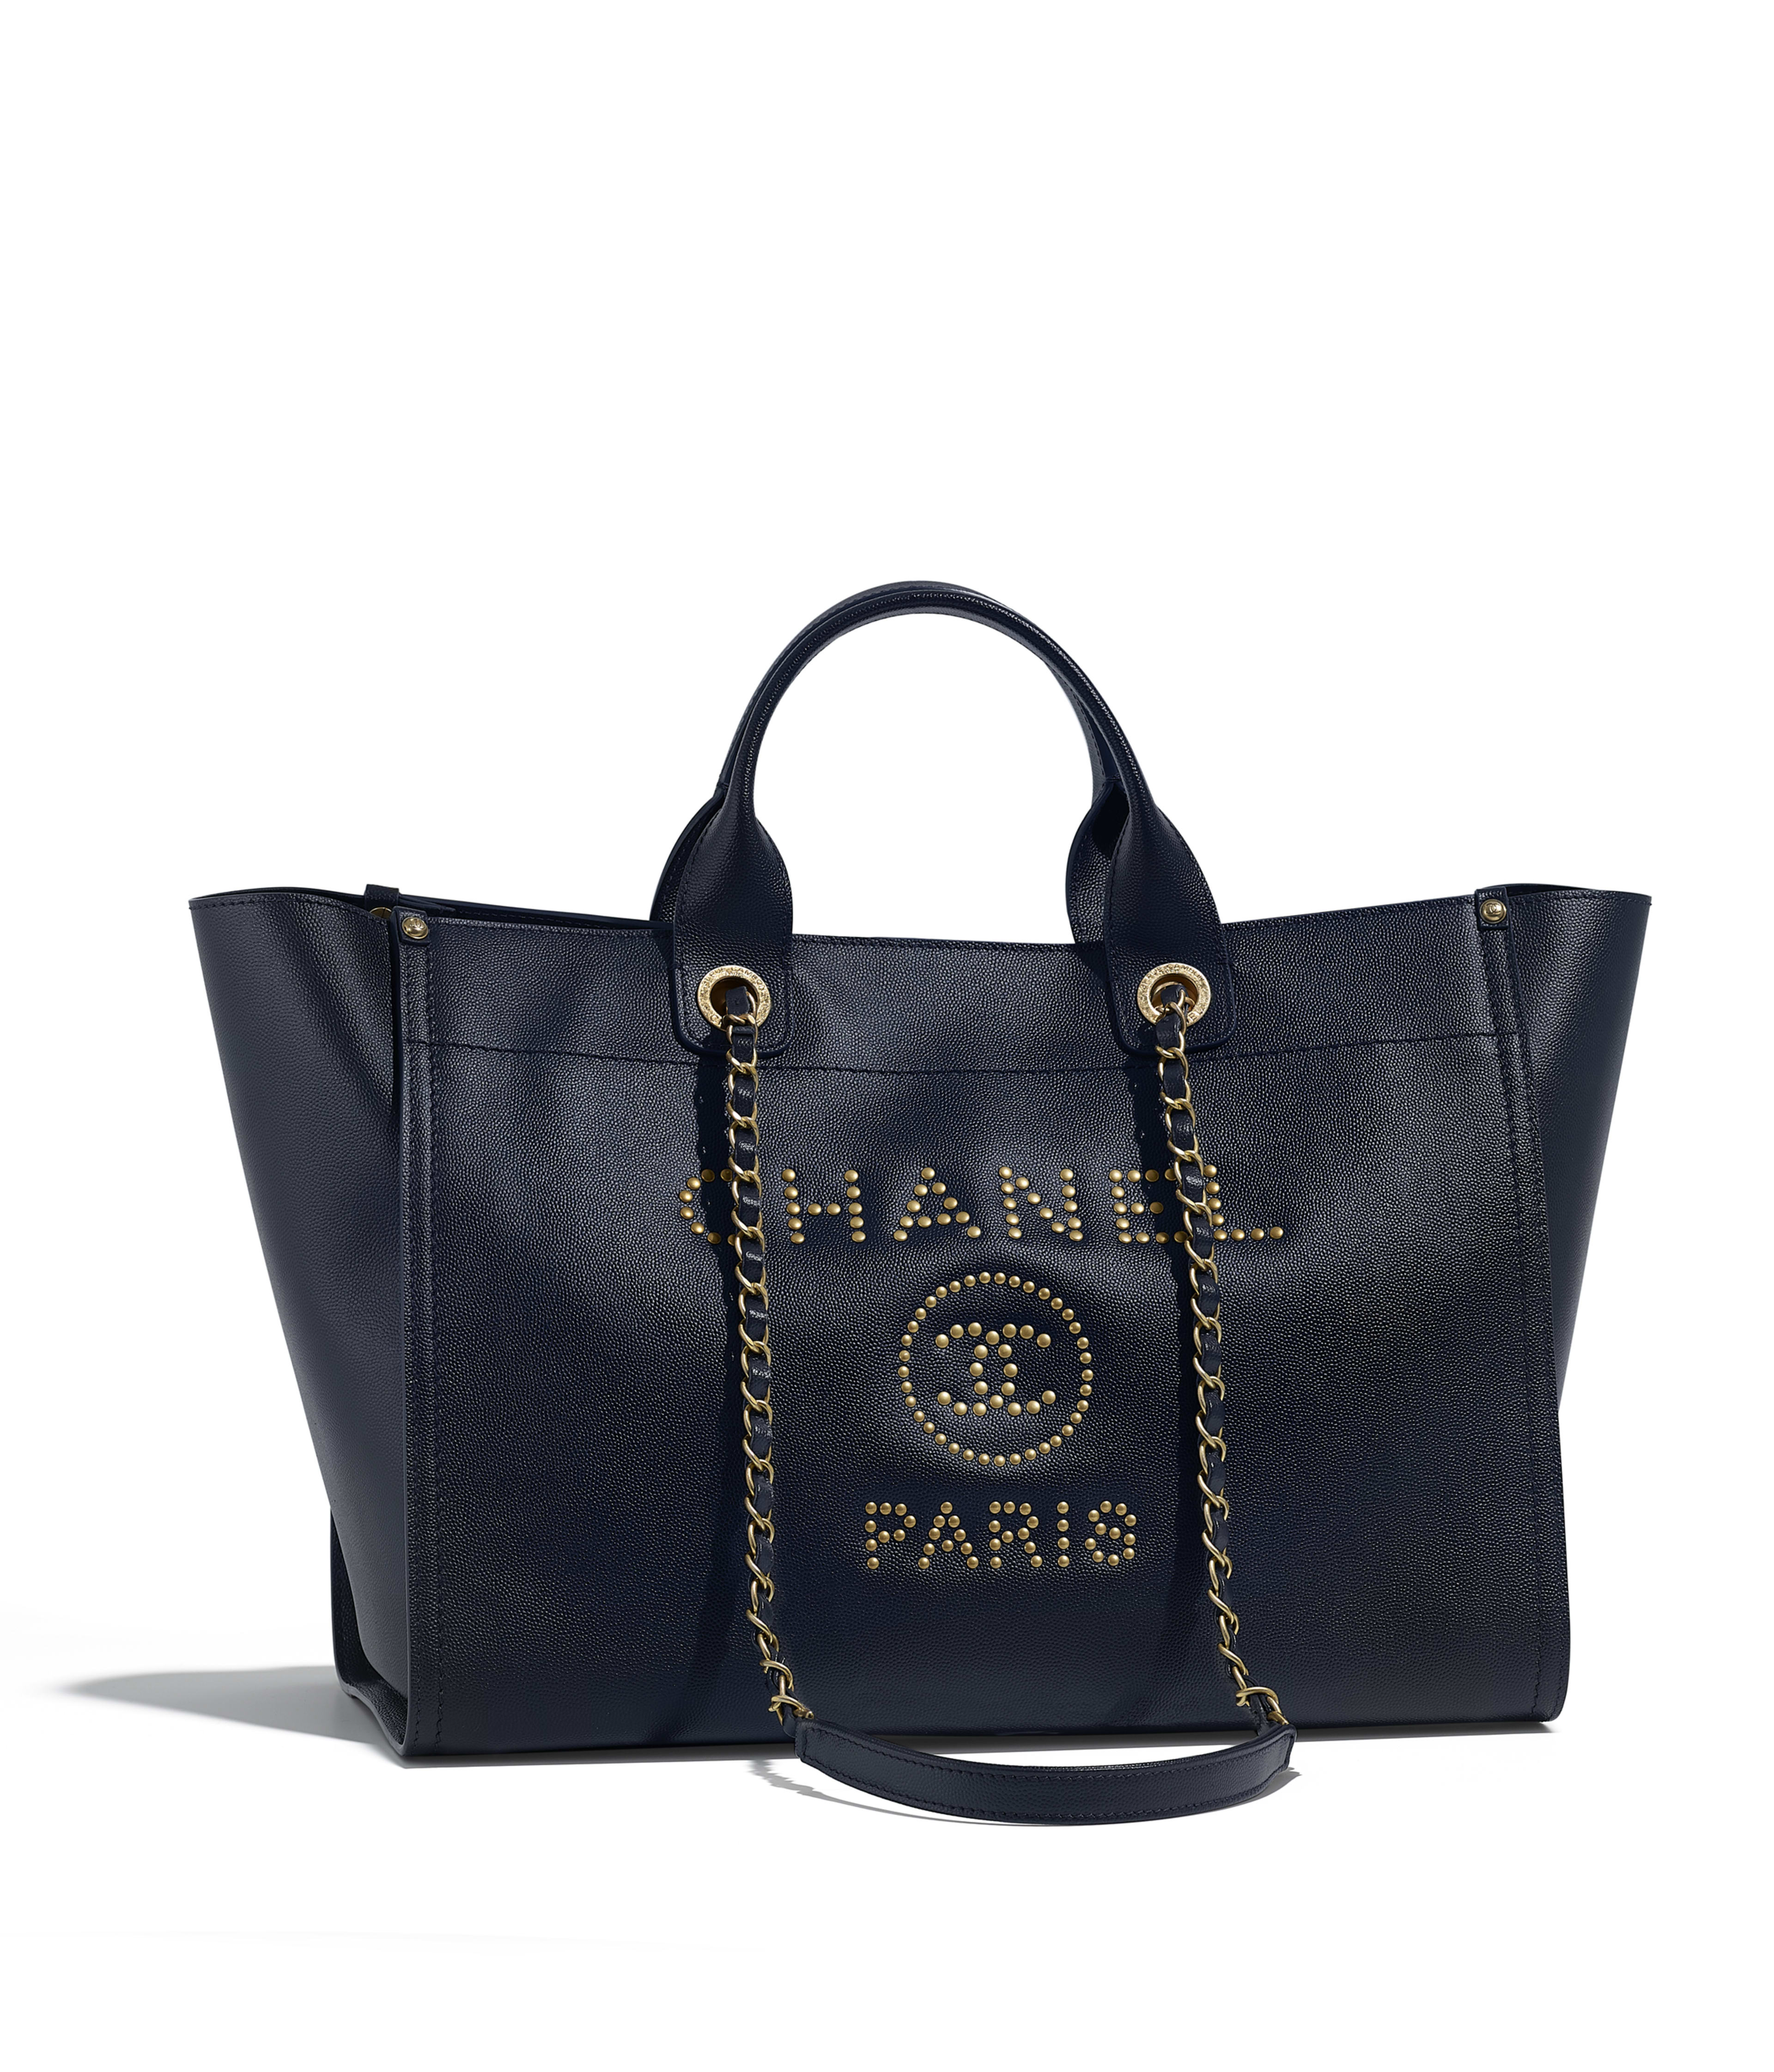 Ping Bag Grained Calfskin Gold Tone Metal Navy Blue Ref A57067y840465b621